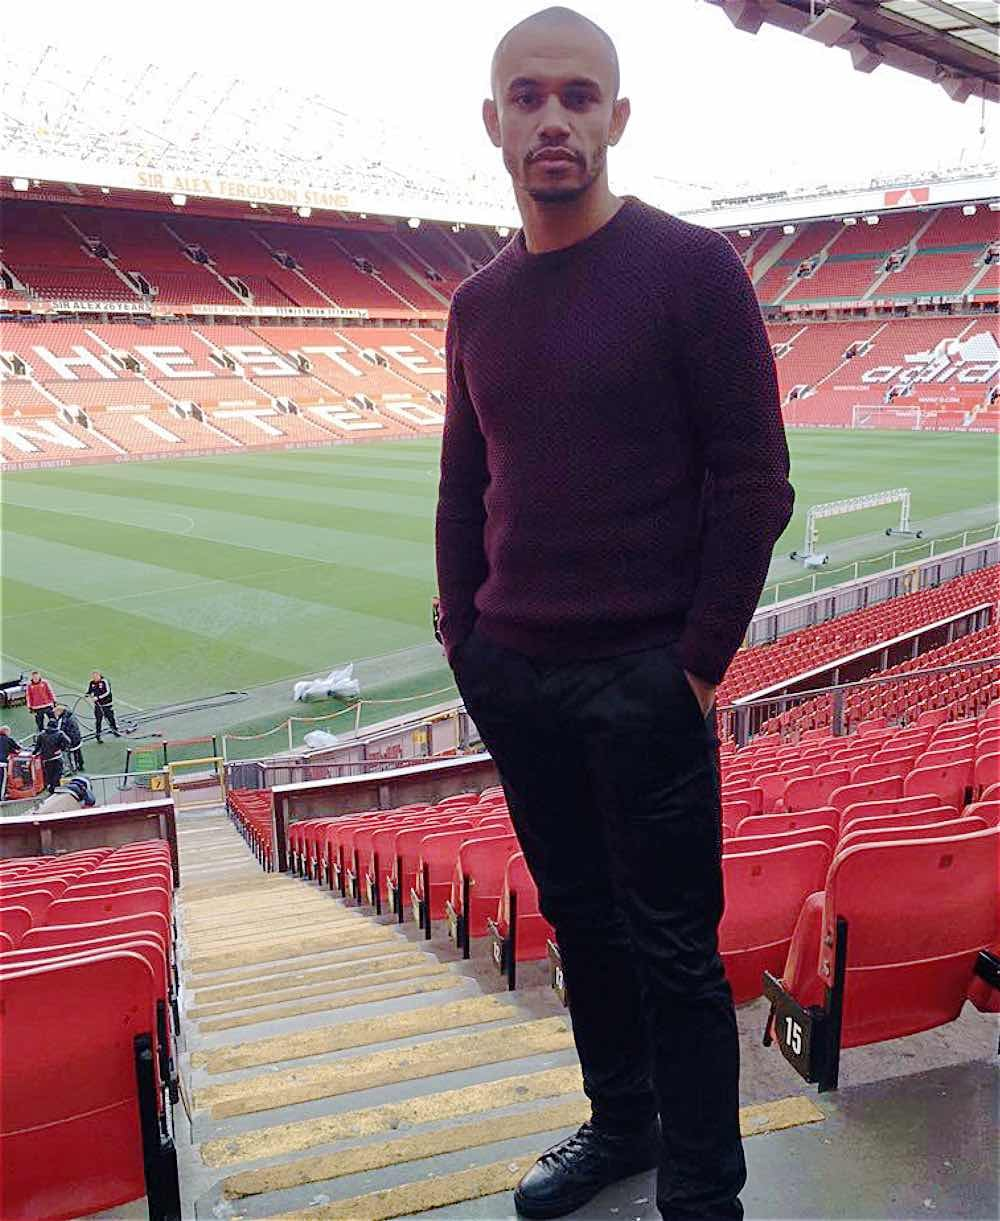 STRIKING POSE:  DANNY WEBBER NOW OF SALFORD CITY, WHO SCORED THE BLADES WINNER AT CARDIFF CITY IN 2006 WHICH CLINCHED PROMOTION TO THE PREMIER LEAGUE. PICTURED AT OLD TRAFFORD WHERE HE IS A FAN AND SEASON TICKET HOLDER.